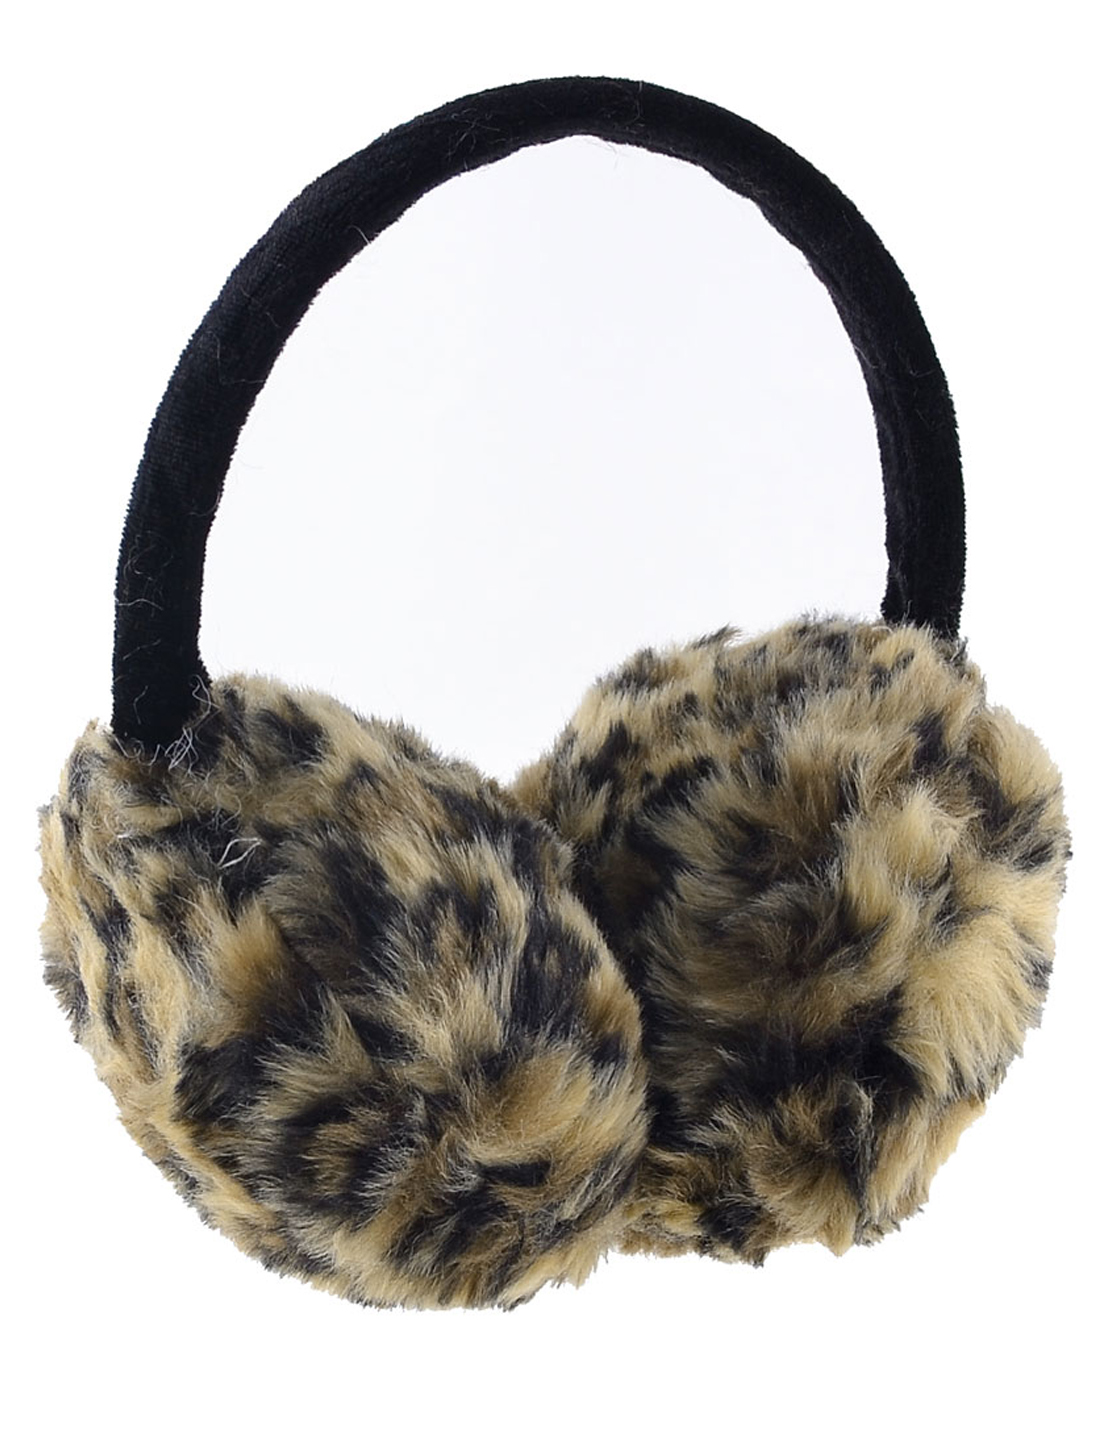 Leopard Pattern 3 Color Ear Winter Warmer Round Earmuffs for Lady Man